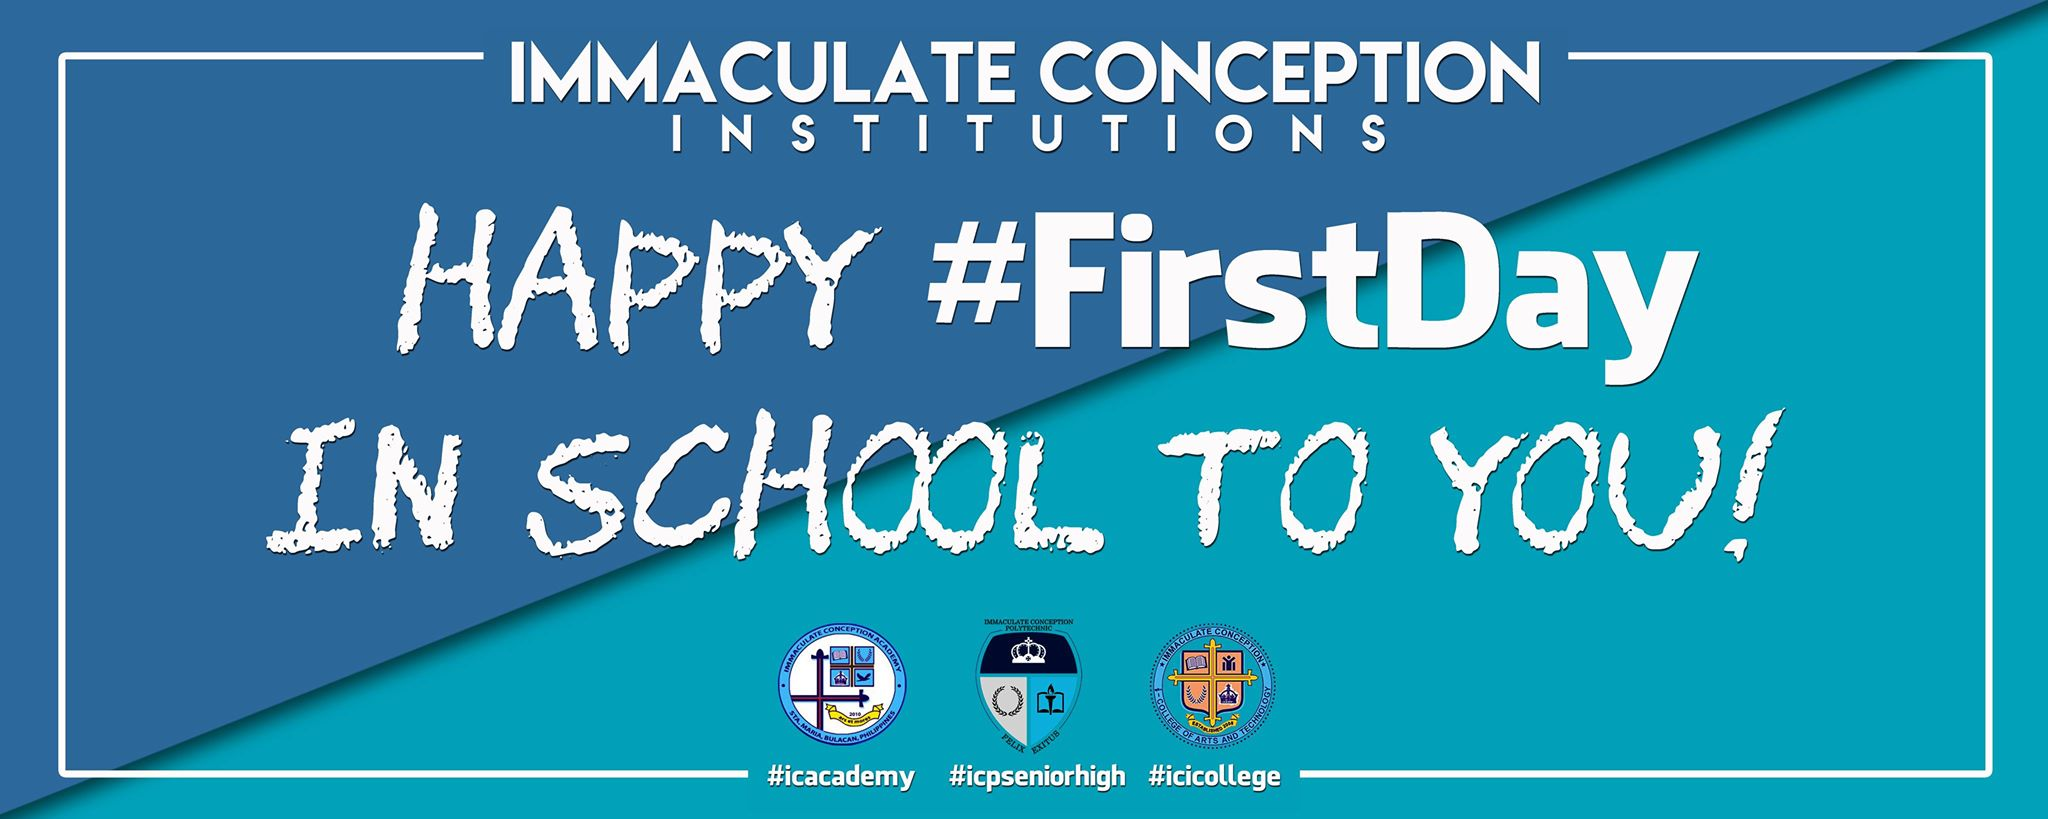 Happy #FirstDay in school to you